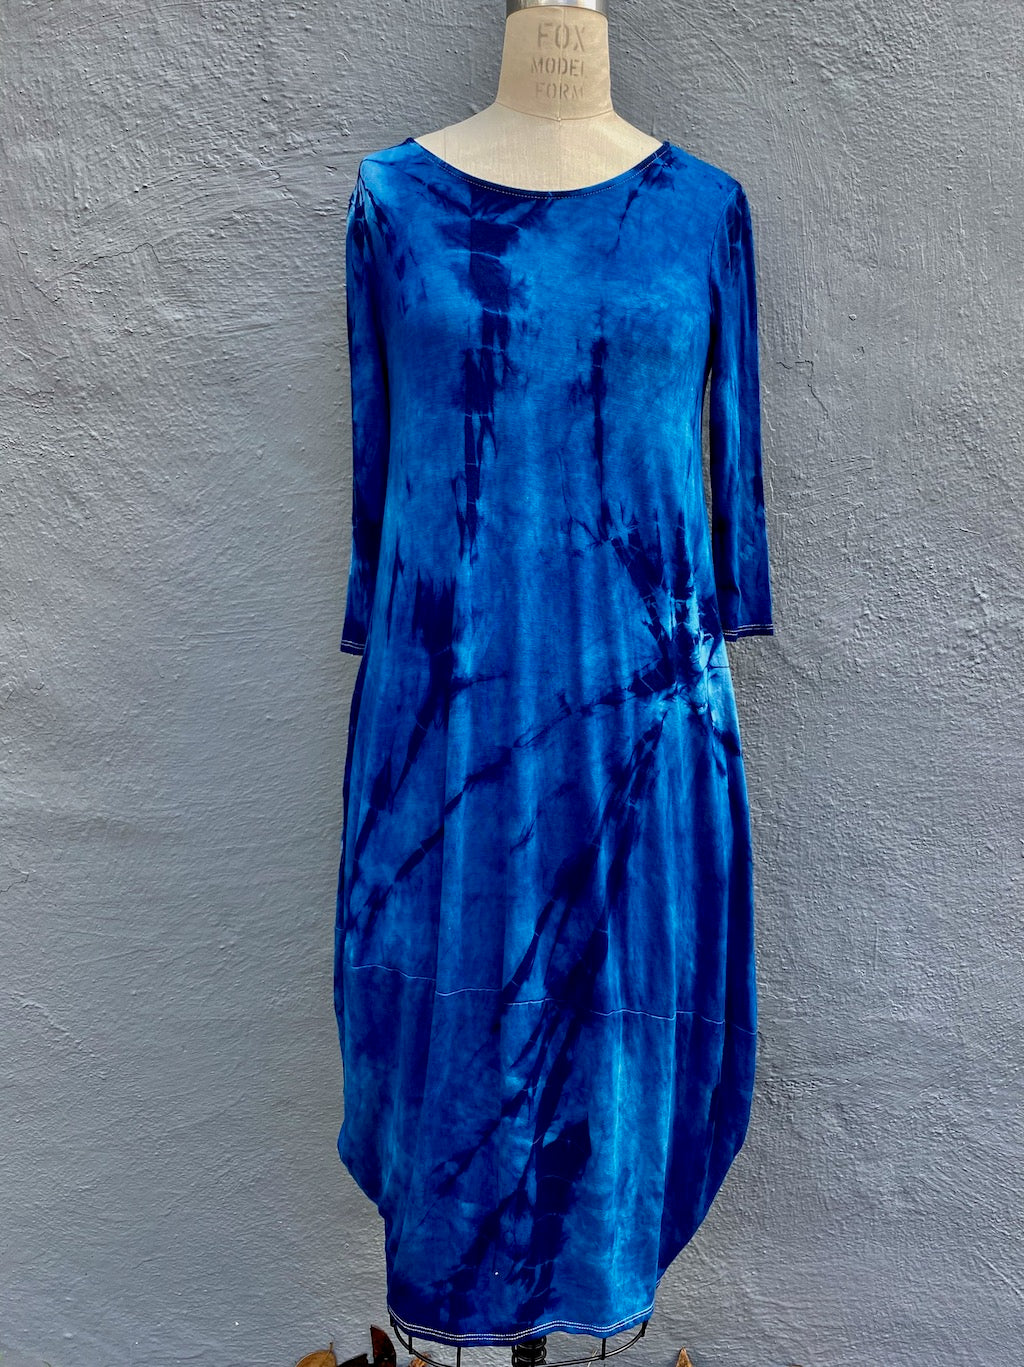 Indigo Blue Shibori Knit Dress | For Women | Willow | Small, Med, 2XL, 3XL Only